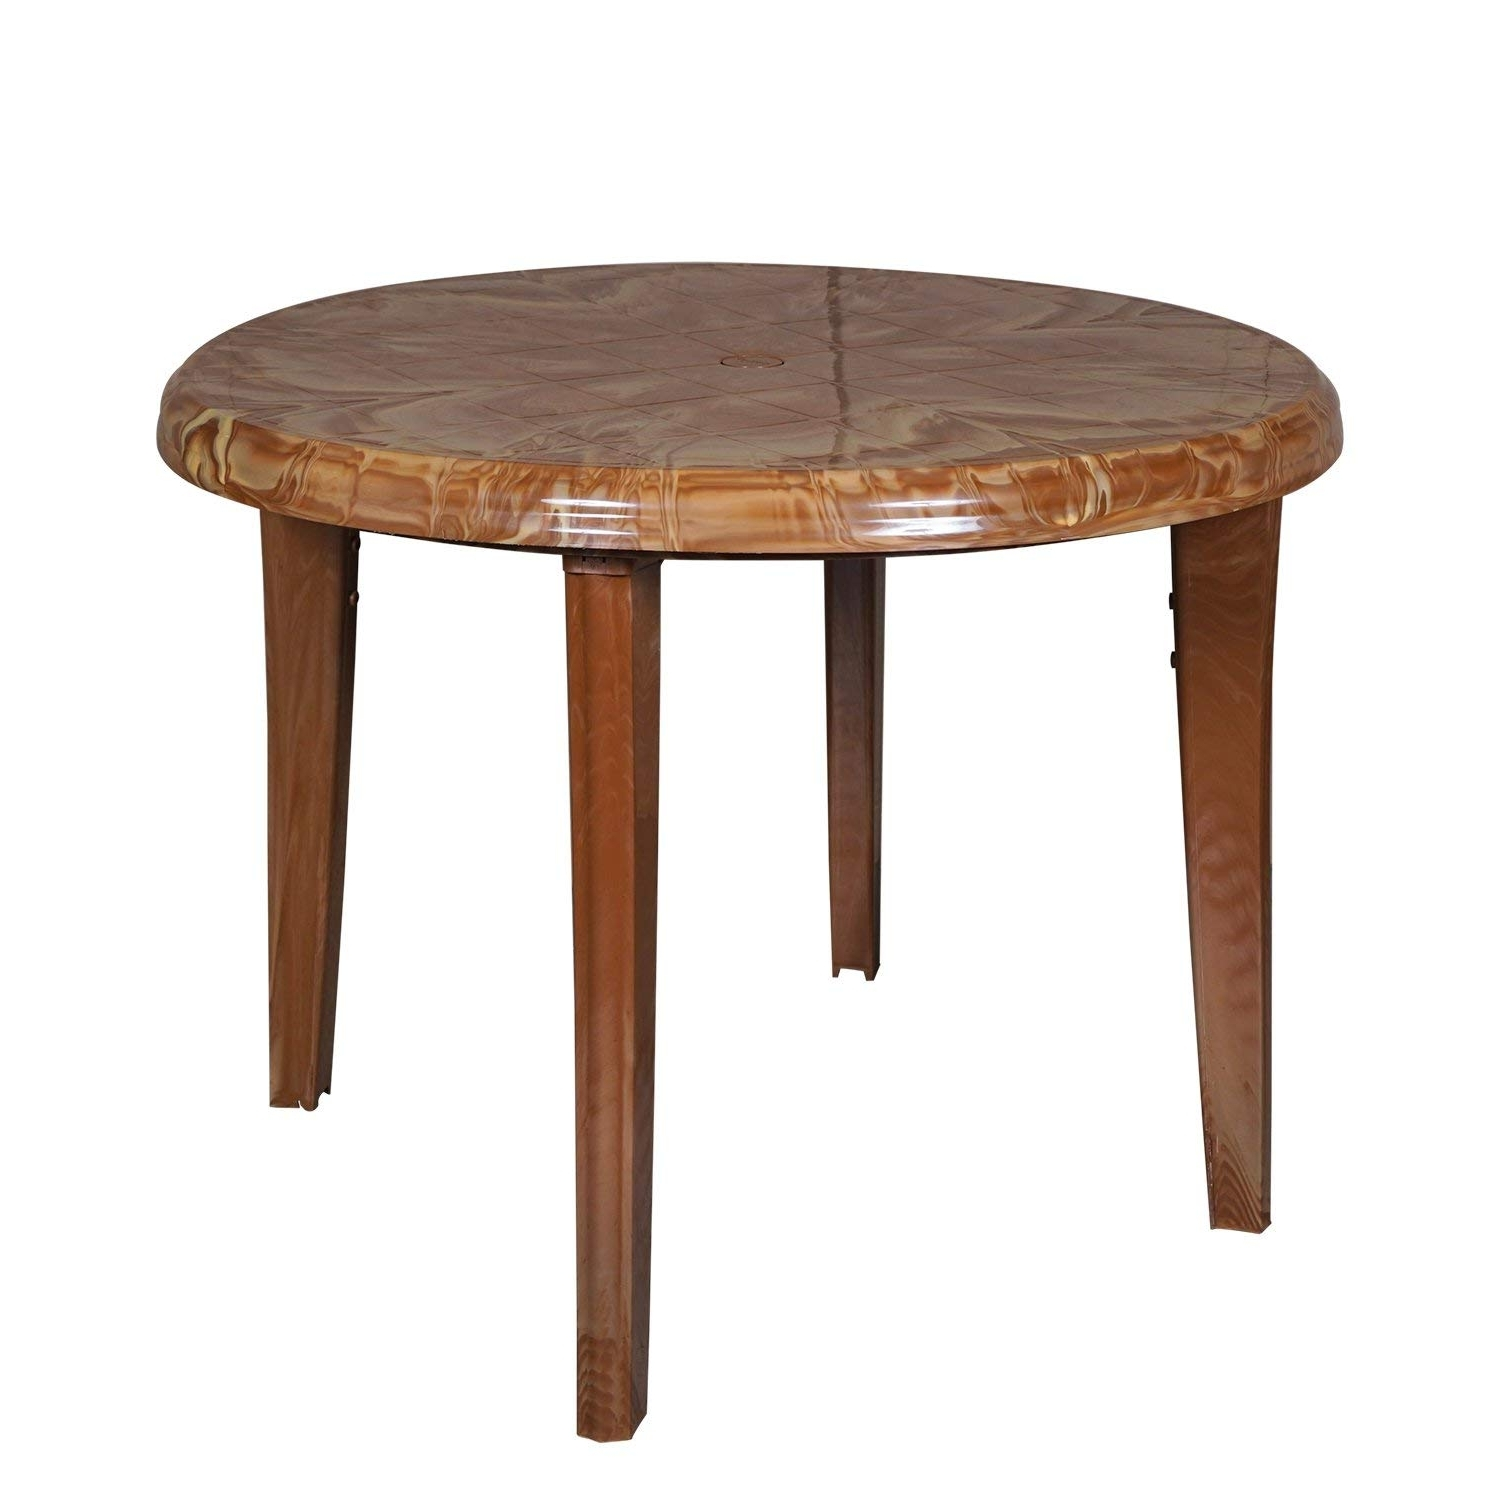 Dining Tables : Buy Dining Tables Online At Low Prices In India Throughout Most Recently Released Indian Dining Tables (View 11 of 25)